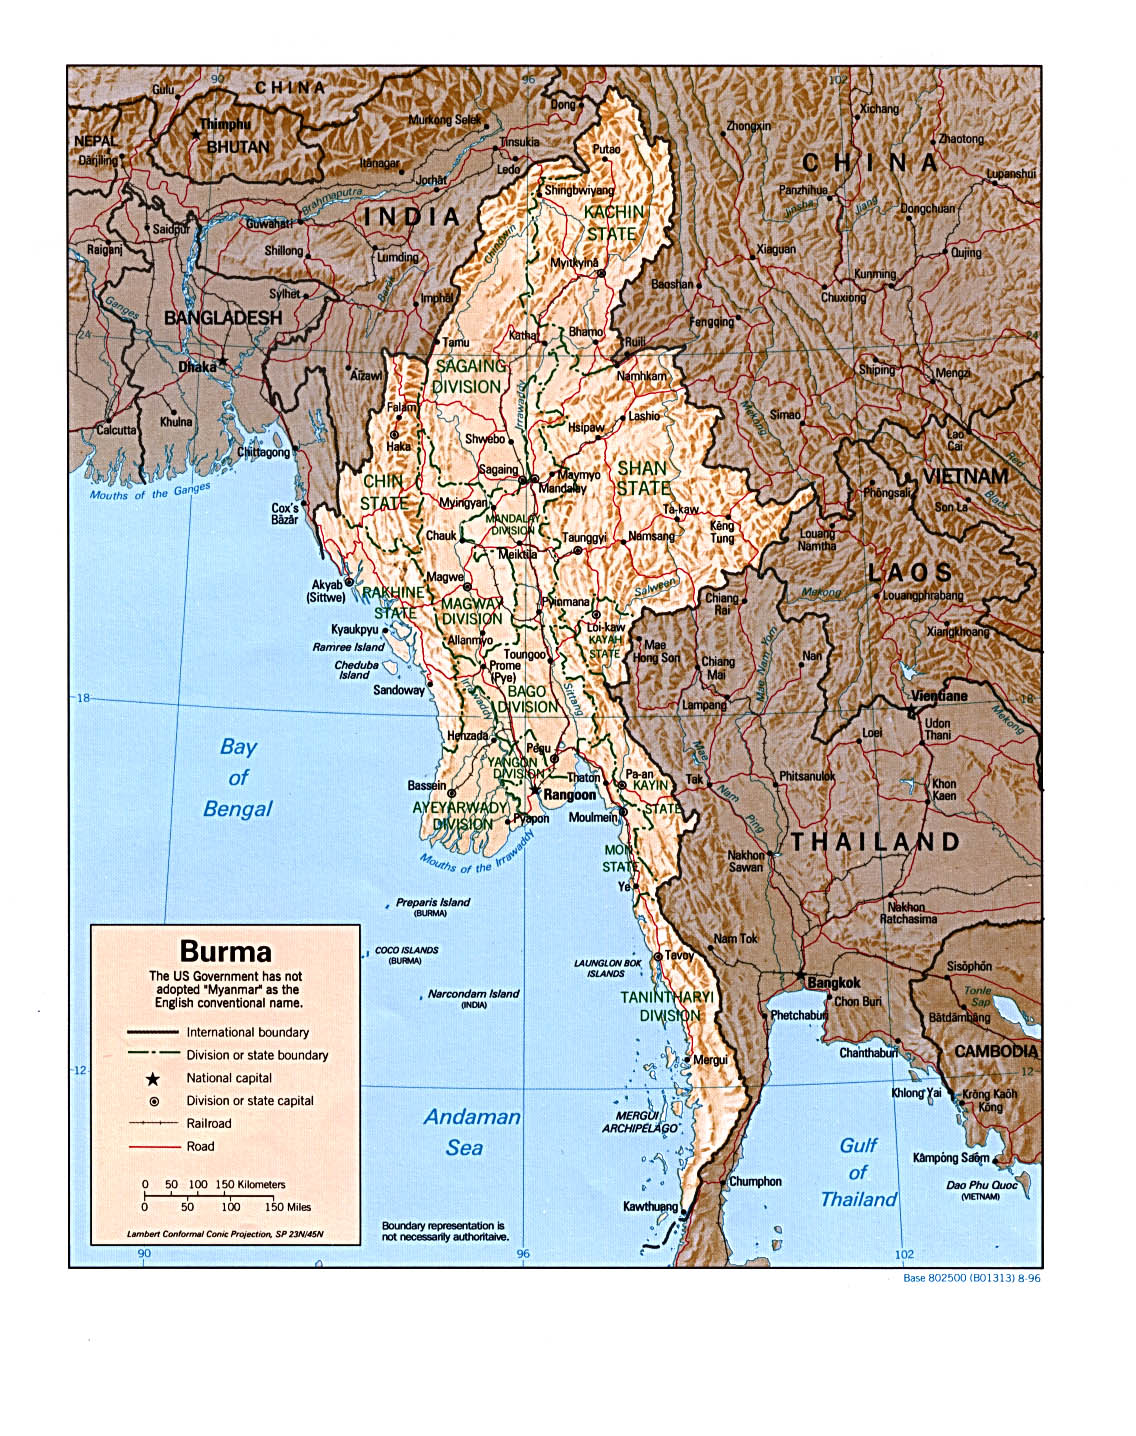 Map Of Burma Burma [Shaded Relief Map] 1996 (417K)